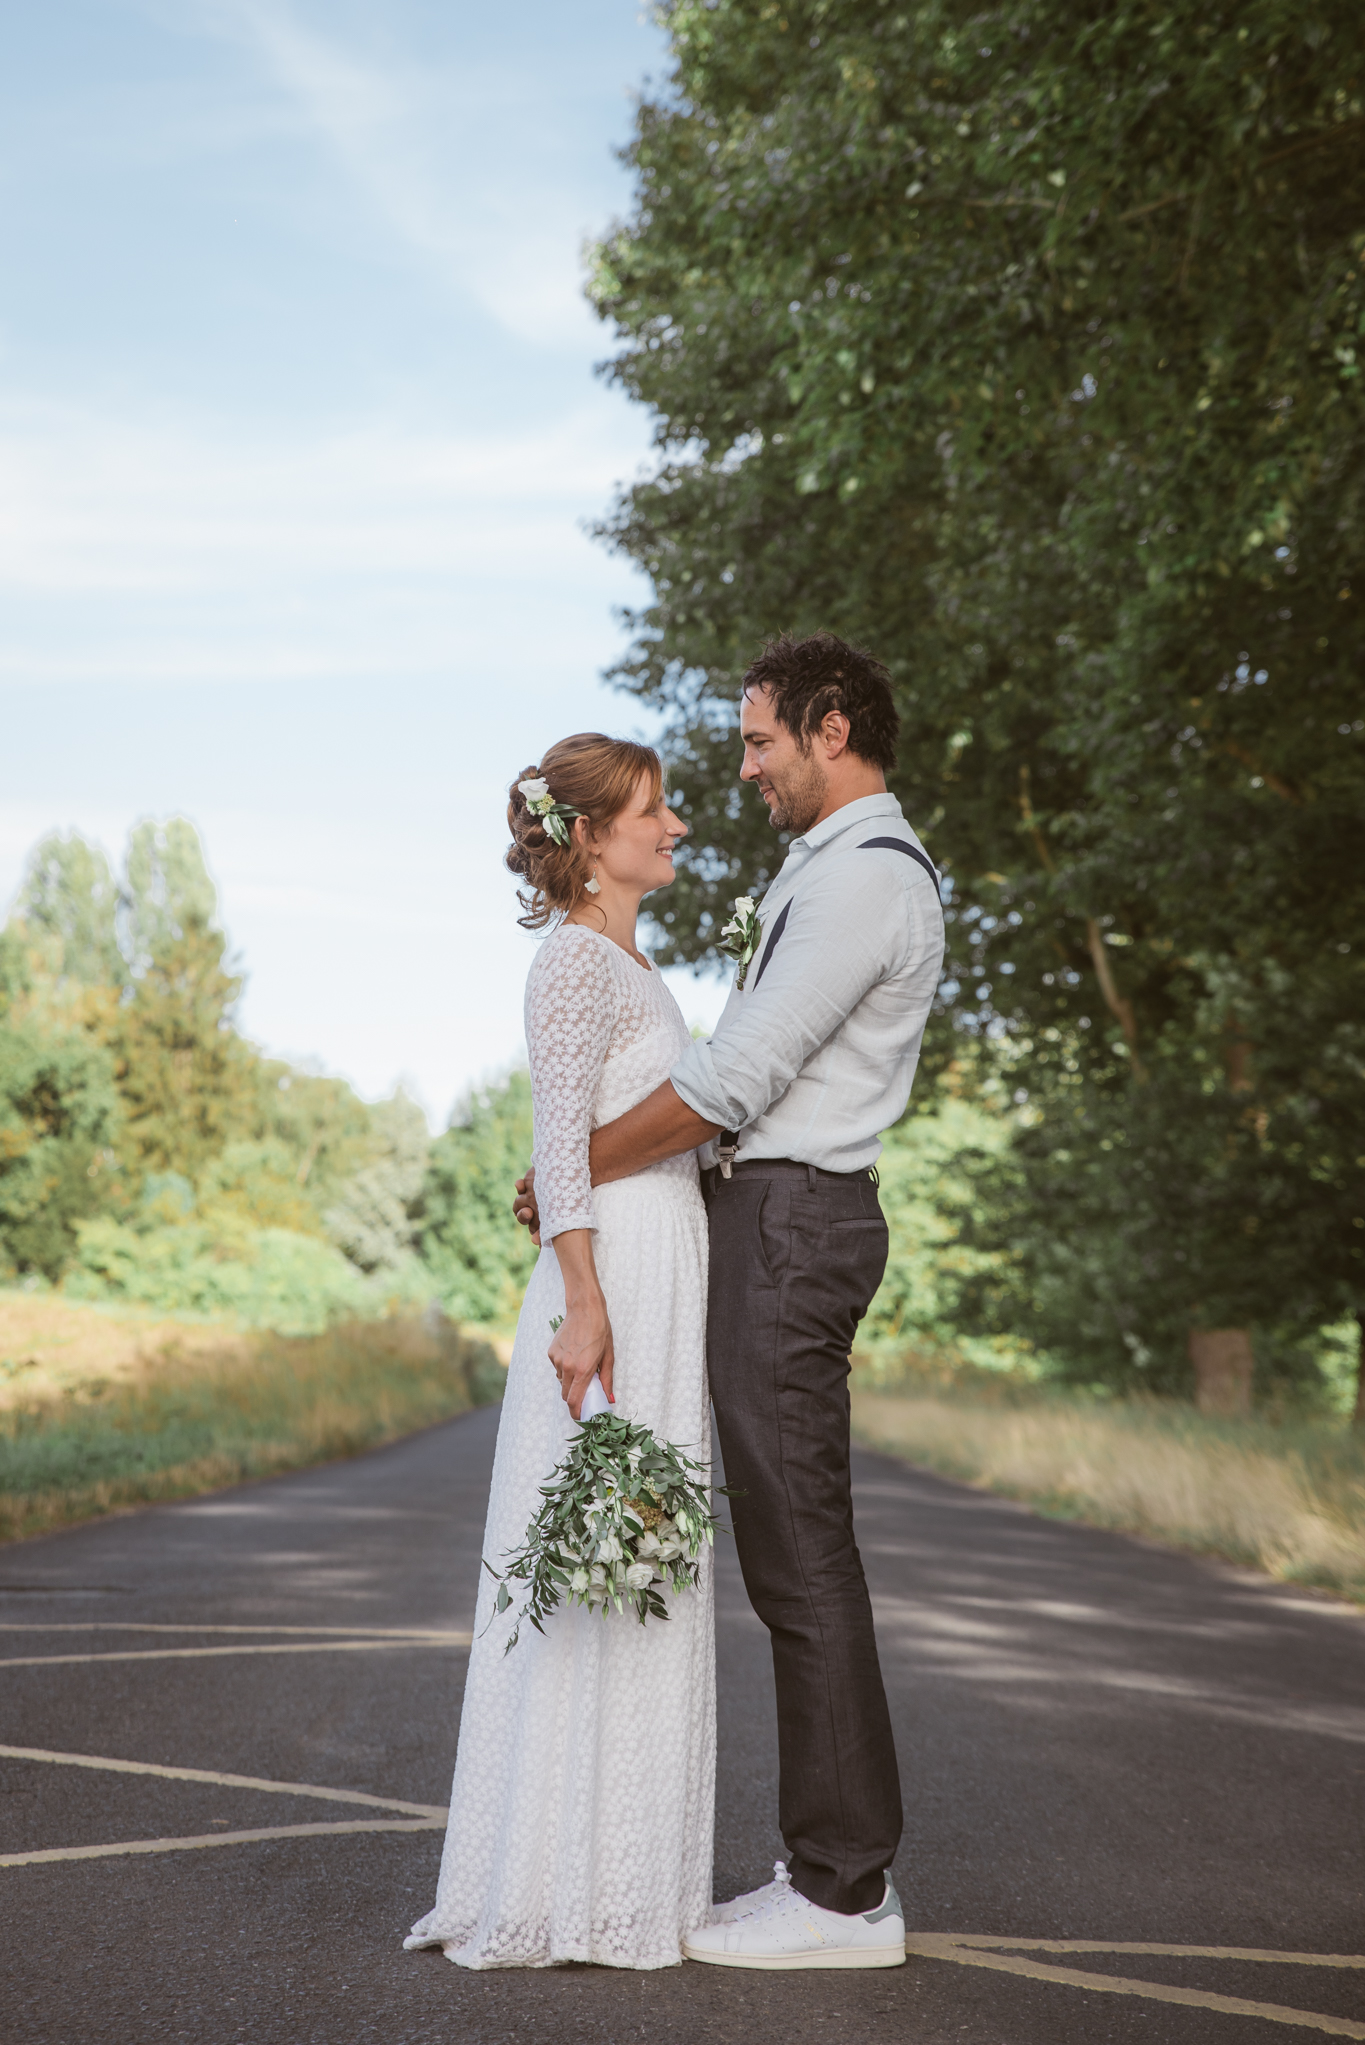 photo de couple originale mariage champetre vintage campagne chic